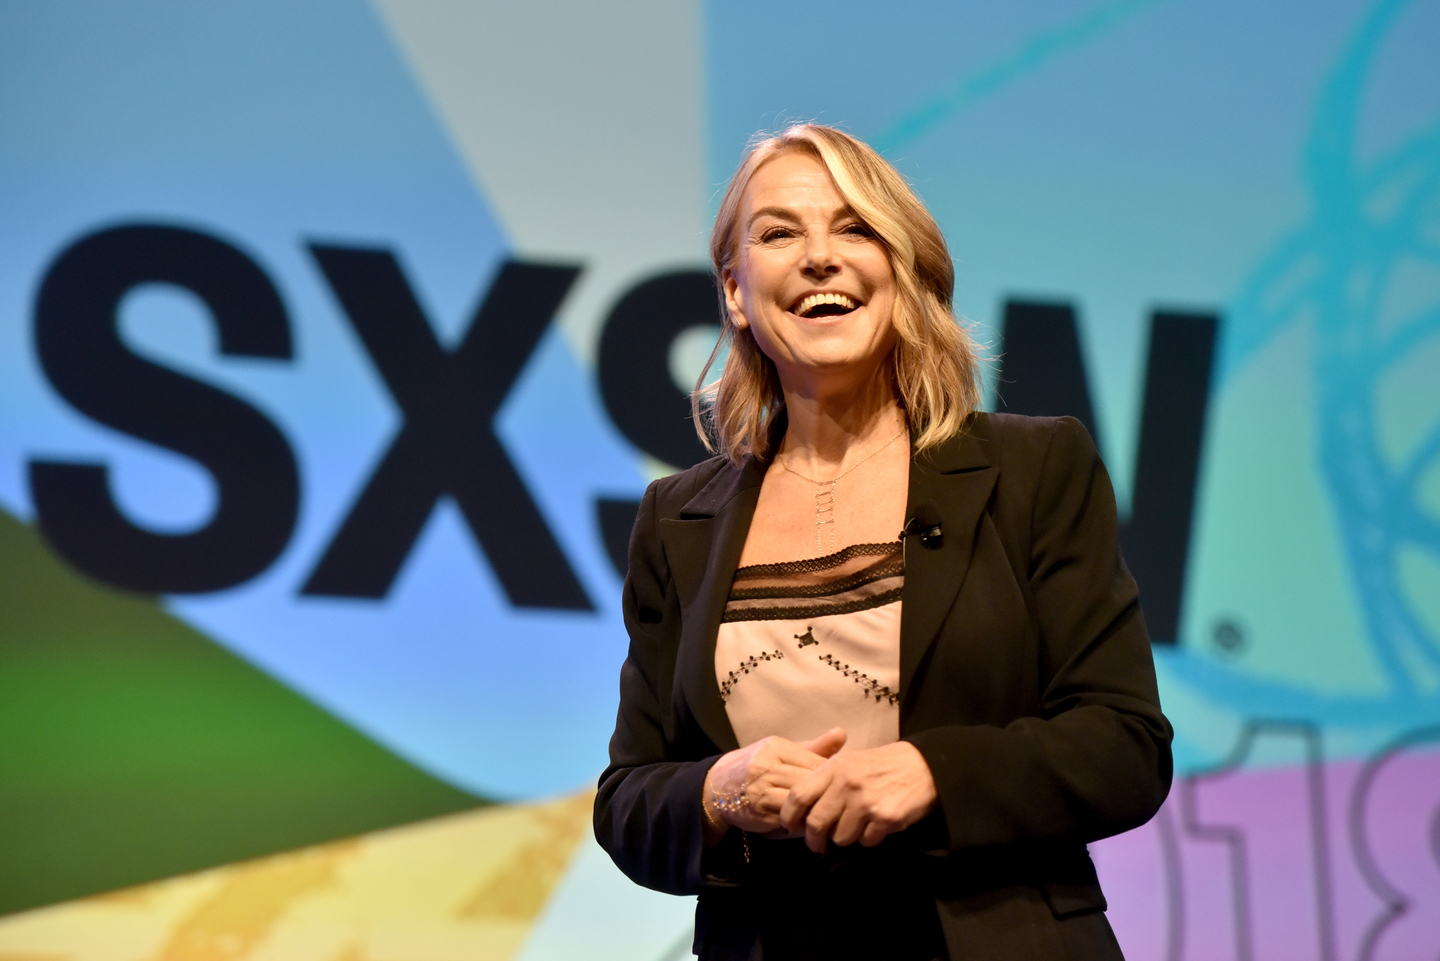 Esther Perel speaks onstage as SXSW 2018 Interactive Keynote. Photo by Amy E. Price/Getty Images for SXSW